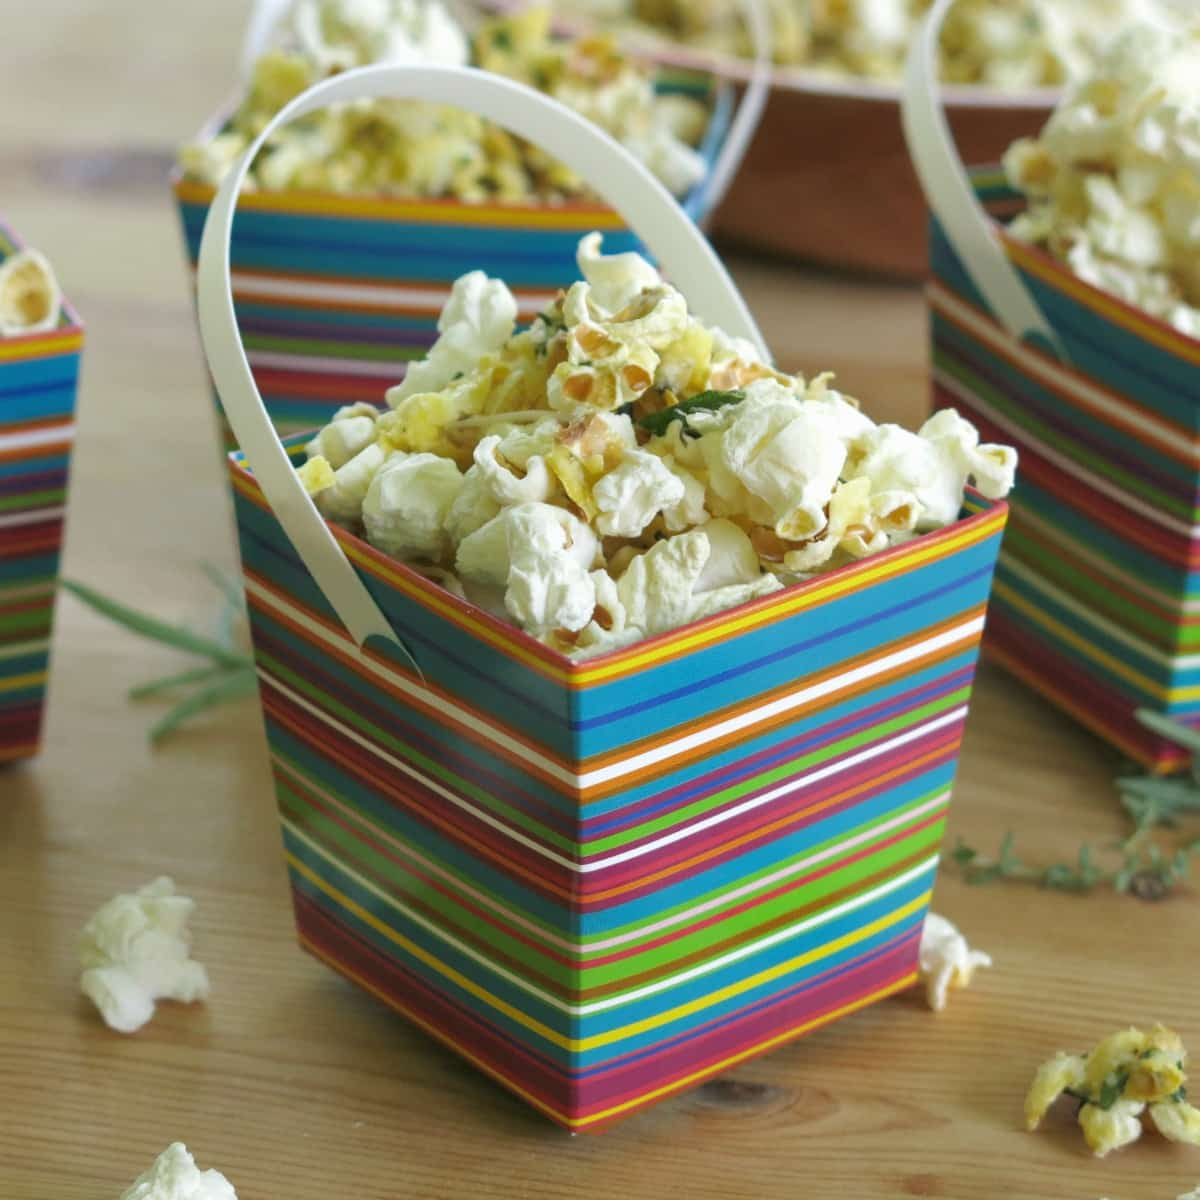 Savory popcorn topped with Parmesan cheese and fresh herbs in serving box.